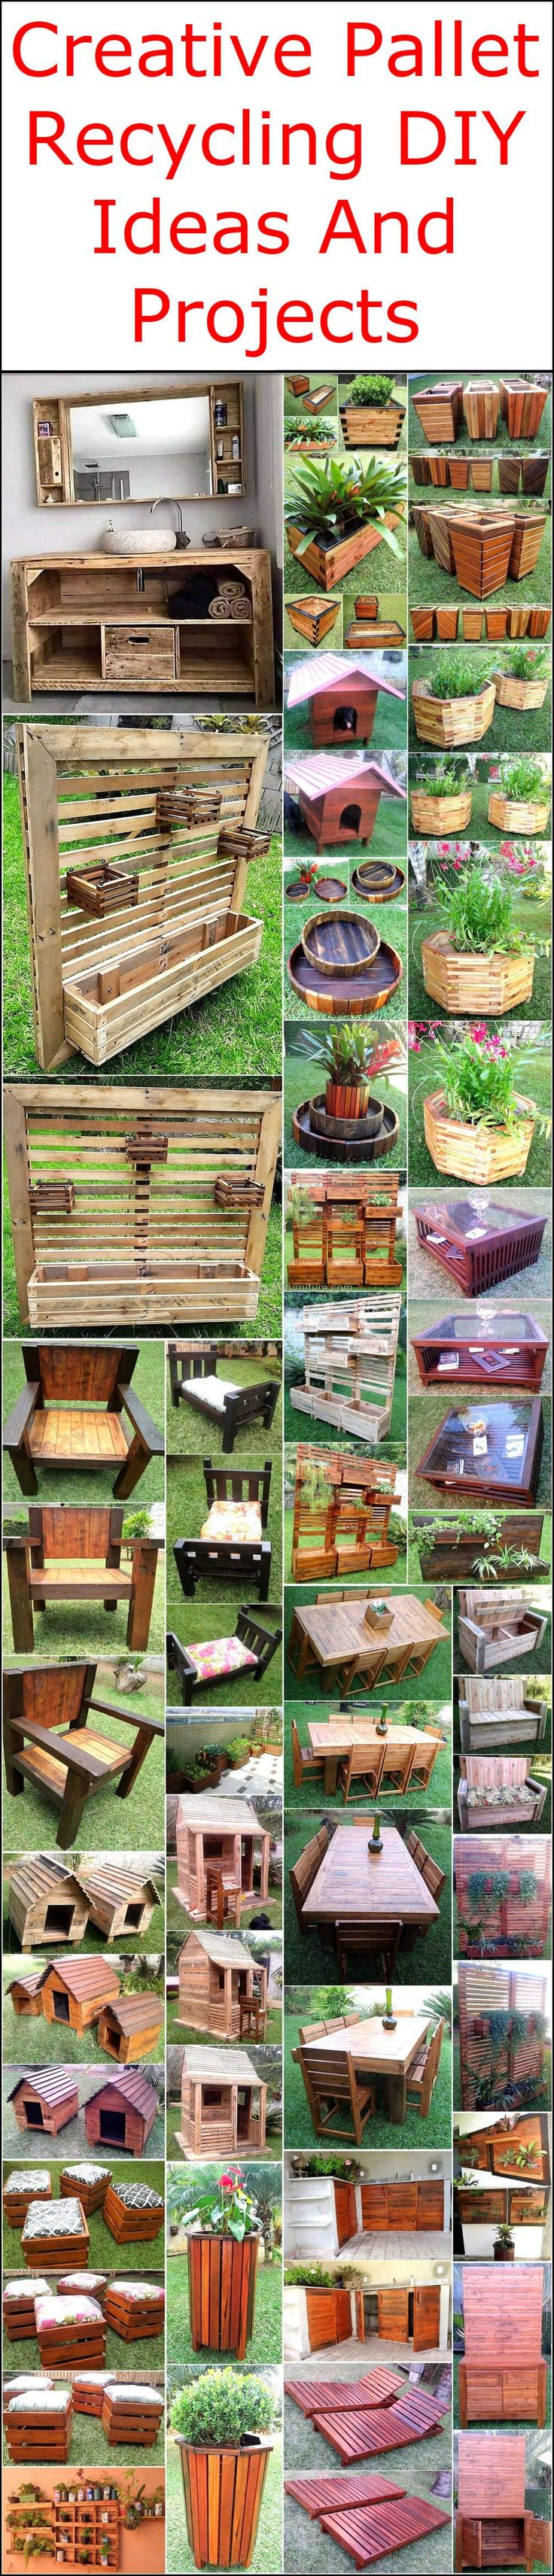 These pallet innovations will refurbish your home according to latest furnishing trends and surprise everyone with your decorating sense and taste. Looking around on this pallet wood site, you will find many useful, attractive and inspiring creations for your places and you can easily make a use of your wasted pallet material in the creation of these delightful DIY pallet plans.  #pallets #woodpallet #palletfurniture #palletproject #palletideas #recycle #recycledpallet #reclaimed #repurposed